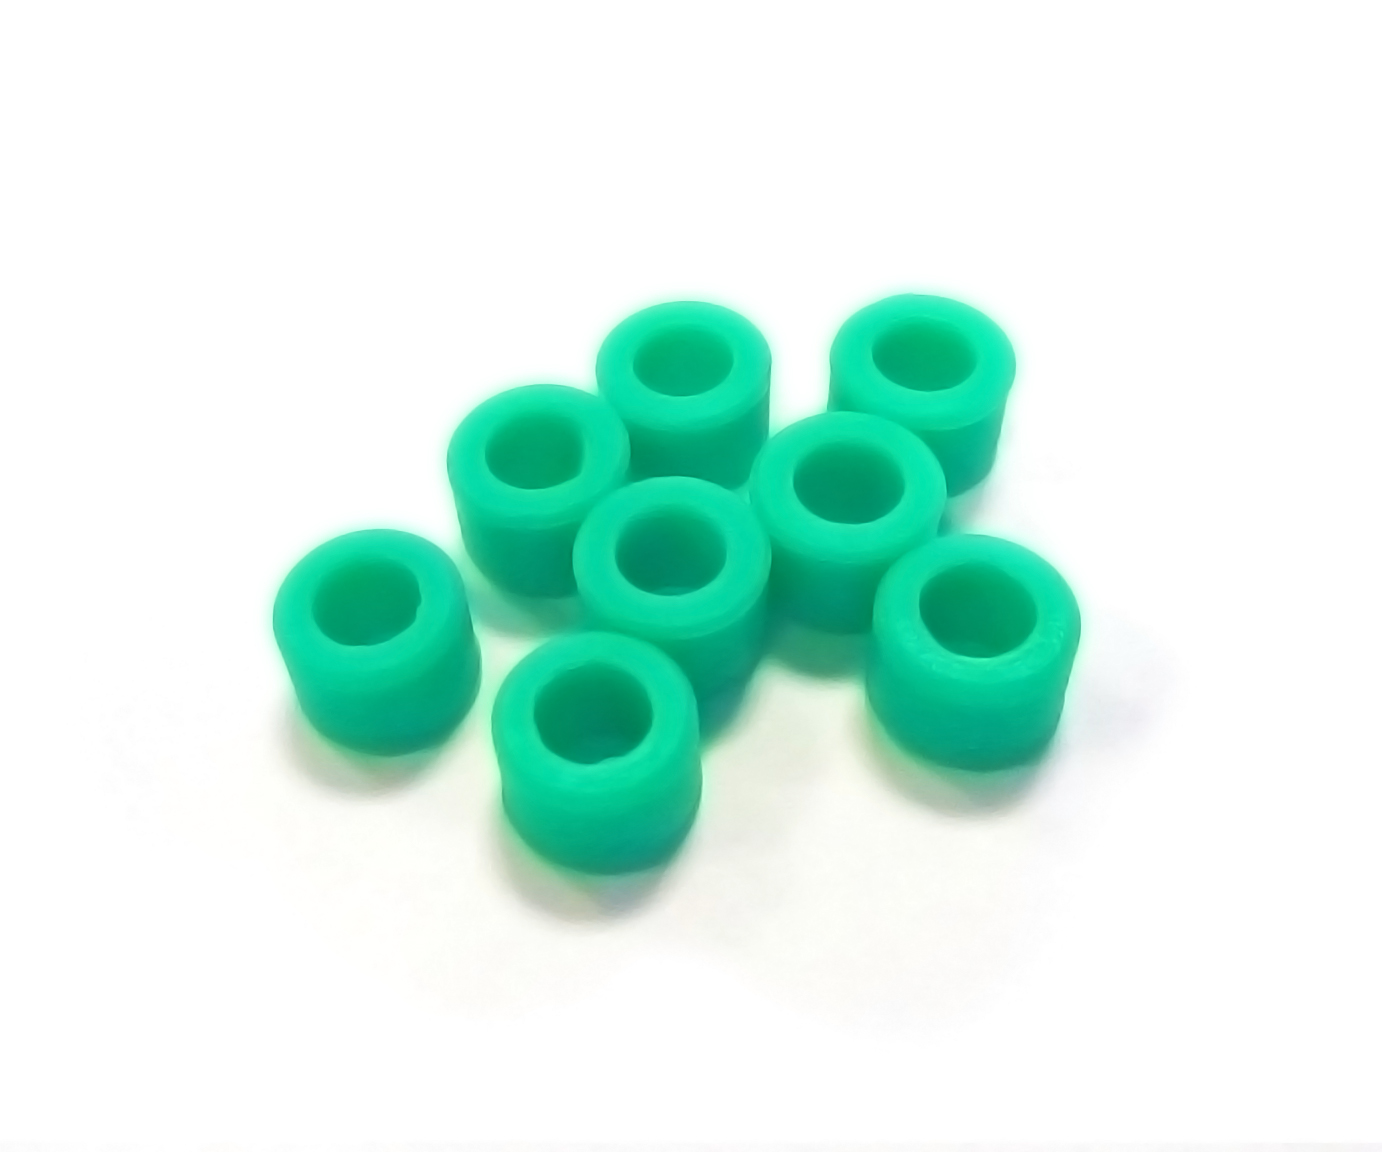 Instrument Ring - Small Green - 8pcs